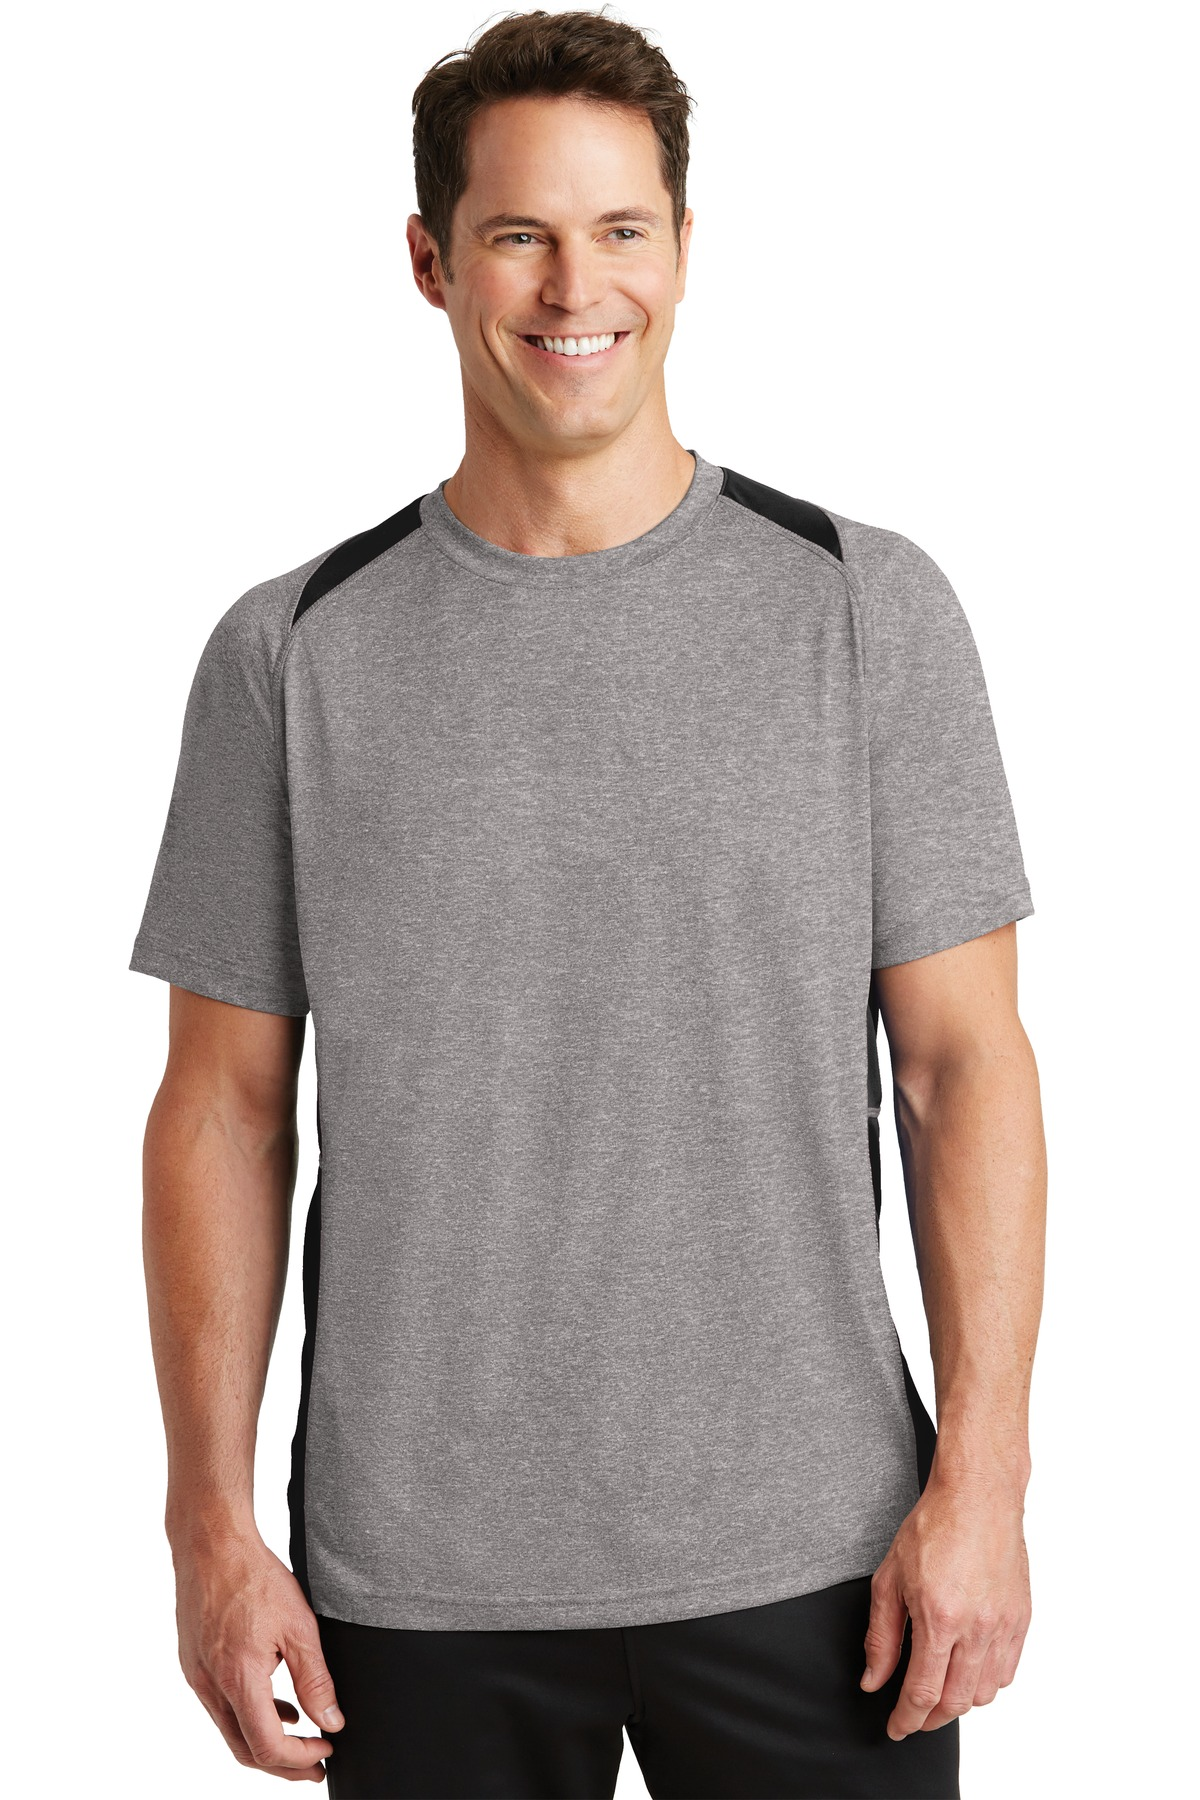 Sport-Tek ®  Heather Colorblock Contender ™  Tee. ST361 - Vintage Heather/ Black